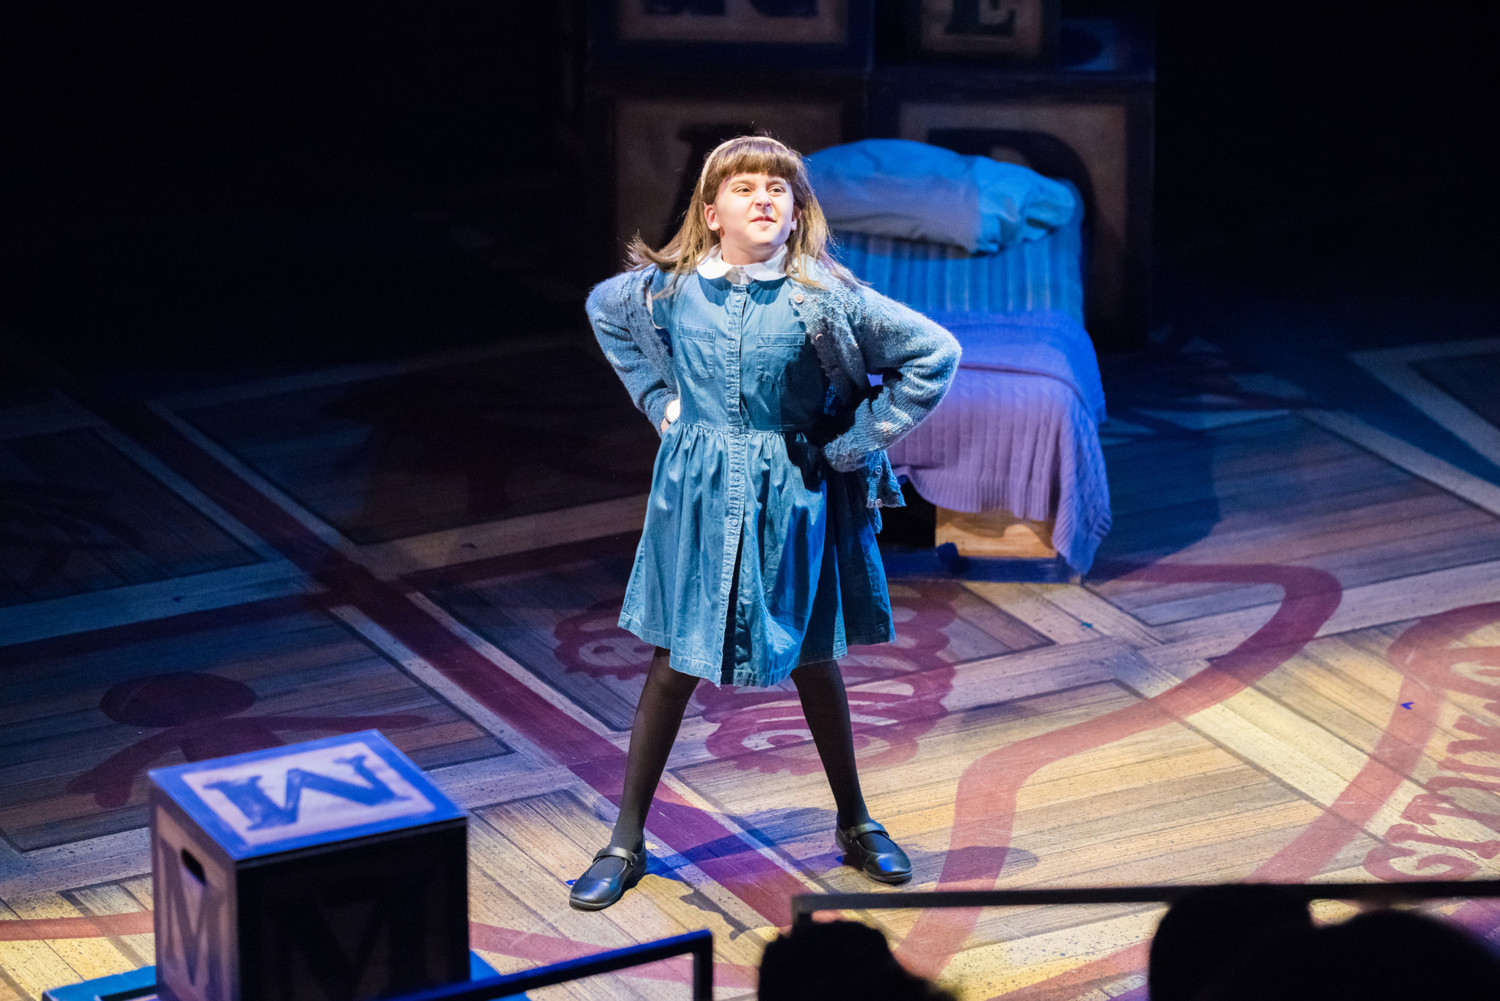 BWW Review: MATILDA Brings Big Magic to Milwaukee's FIRST STAGE